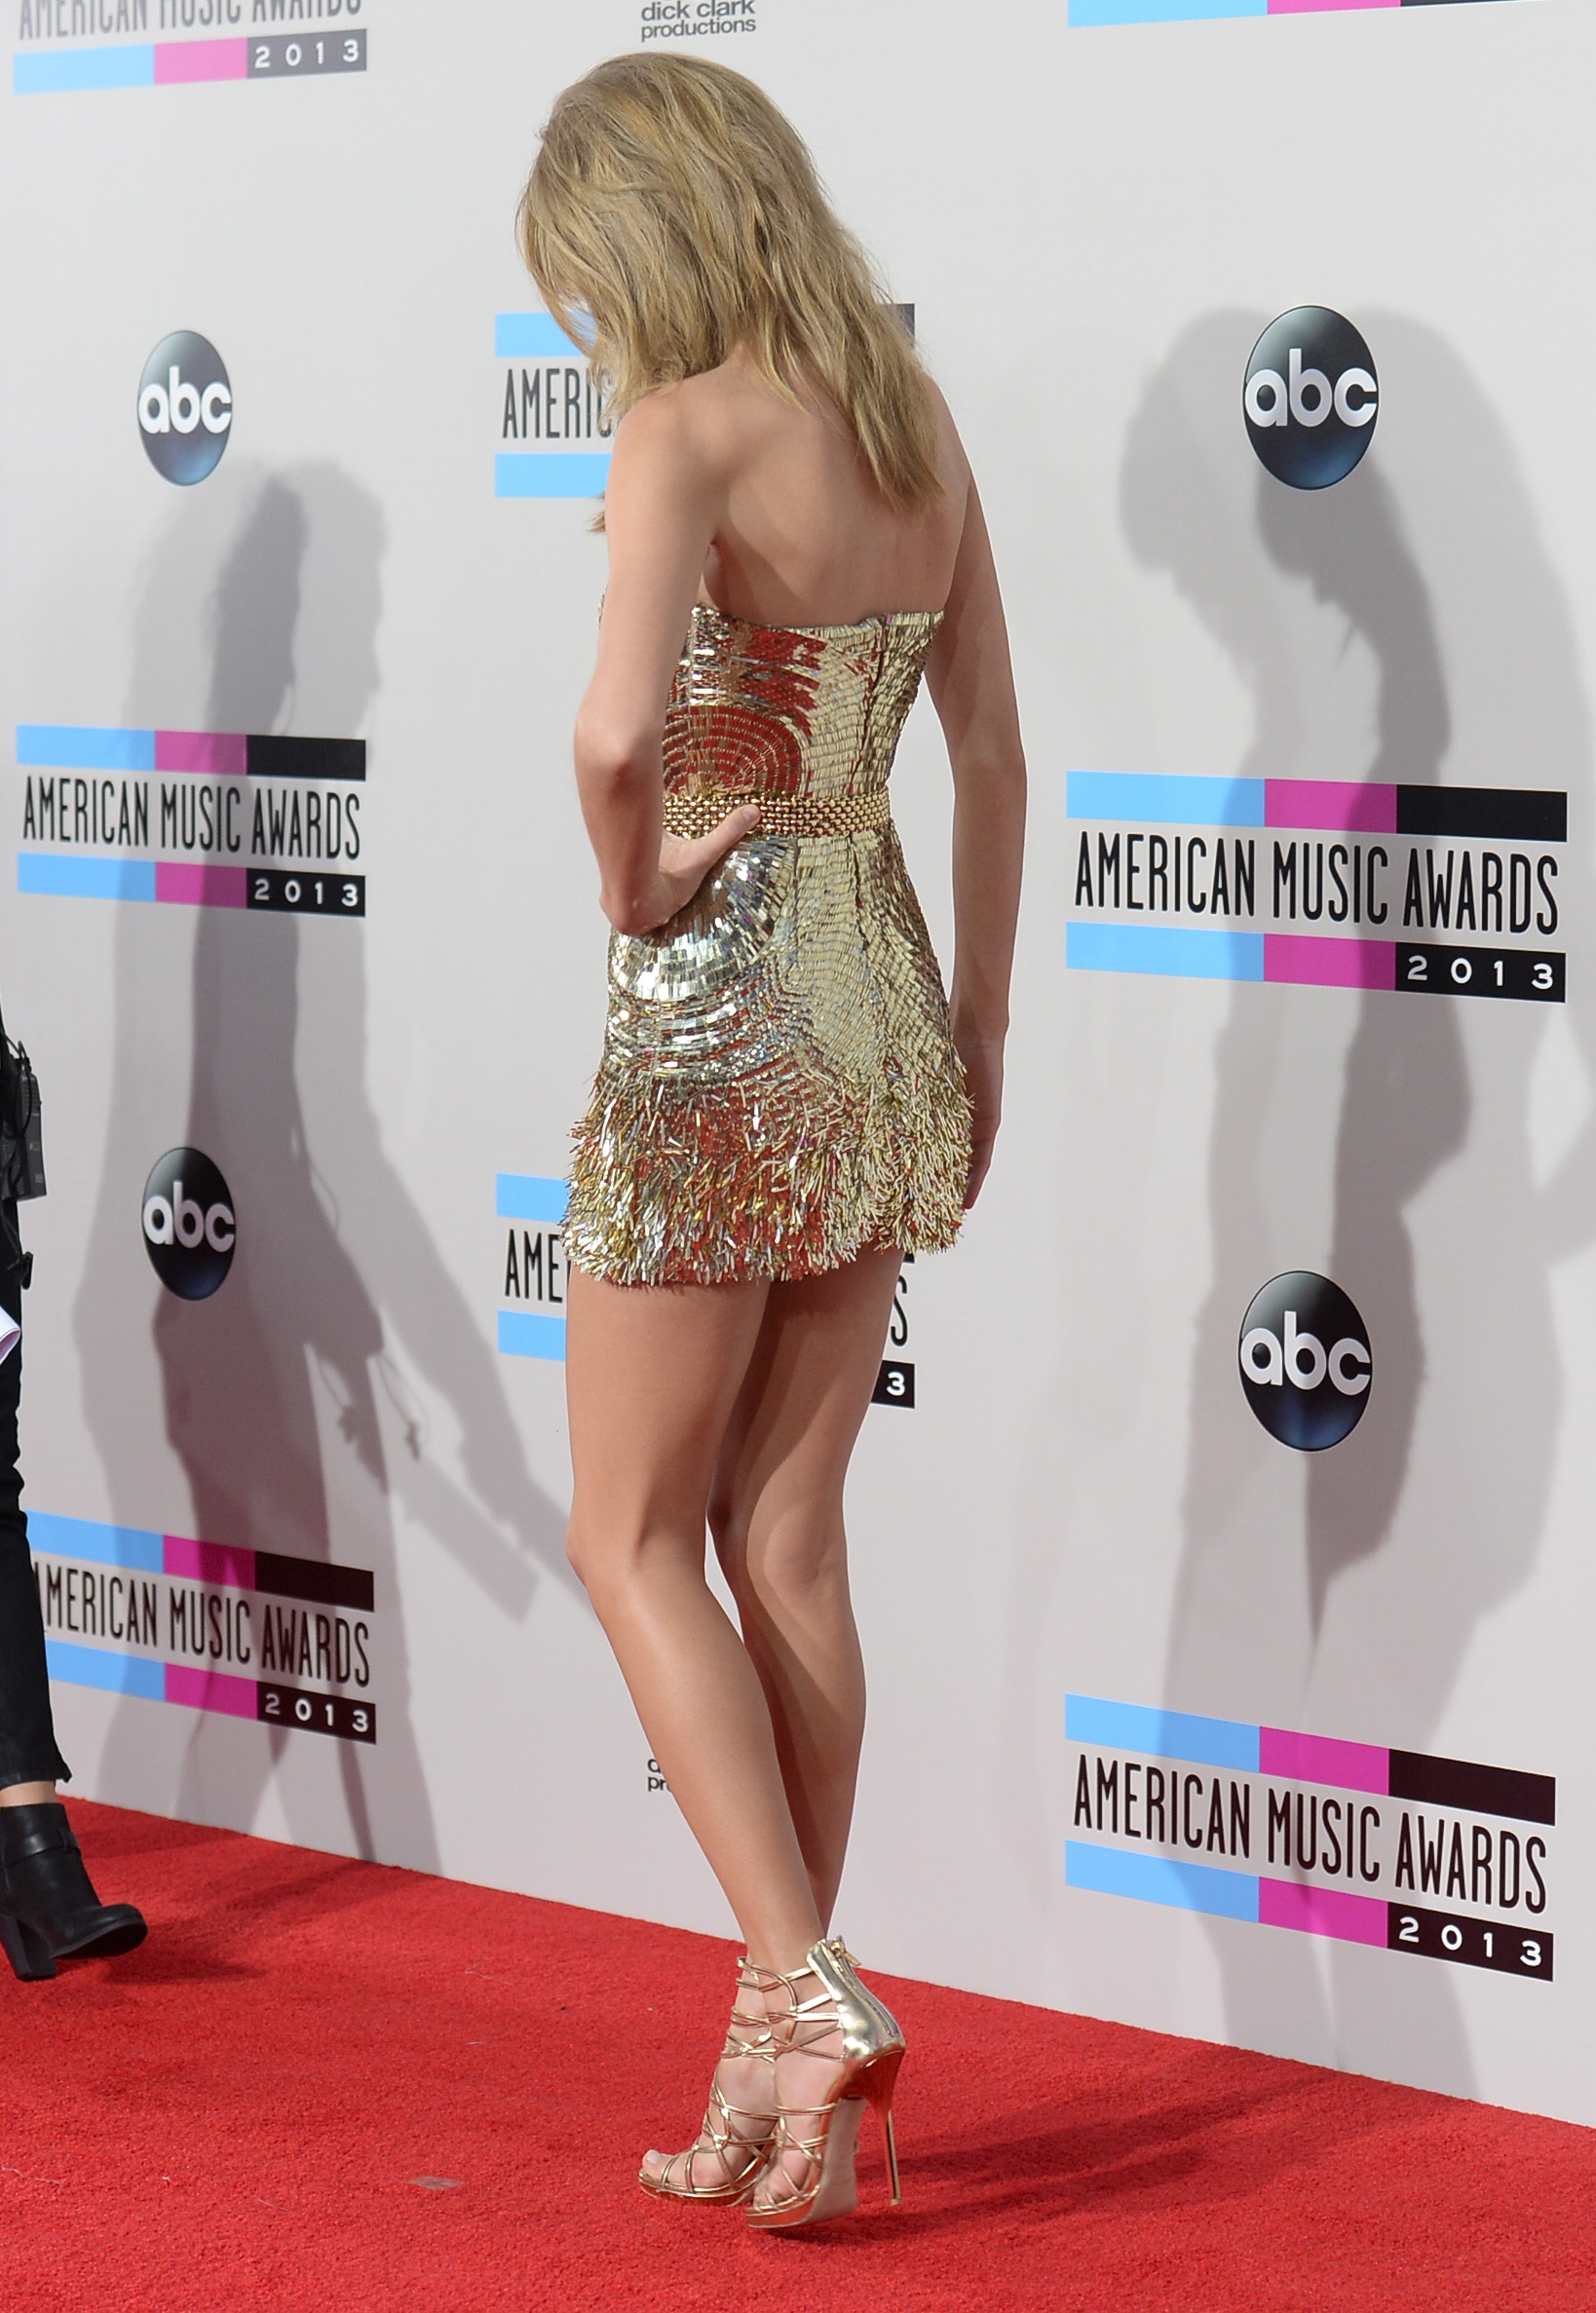 http://taylorpictures.net/albums/app/2013/americanmusicawards/038.jpg